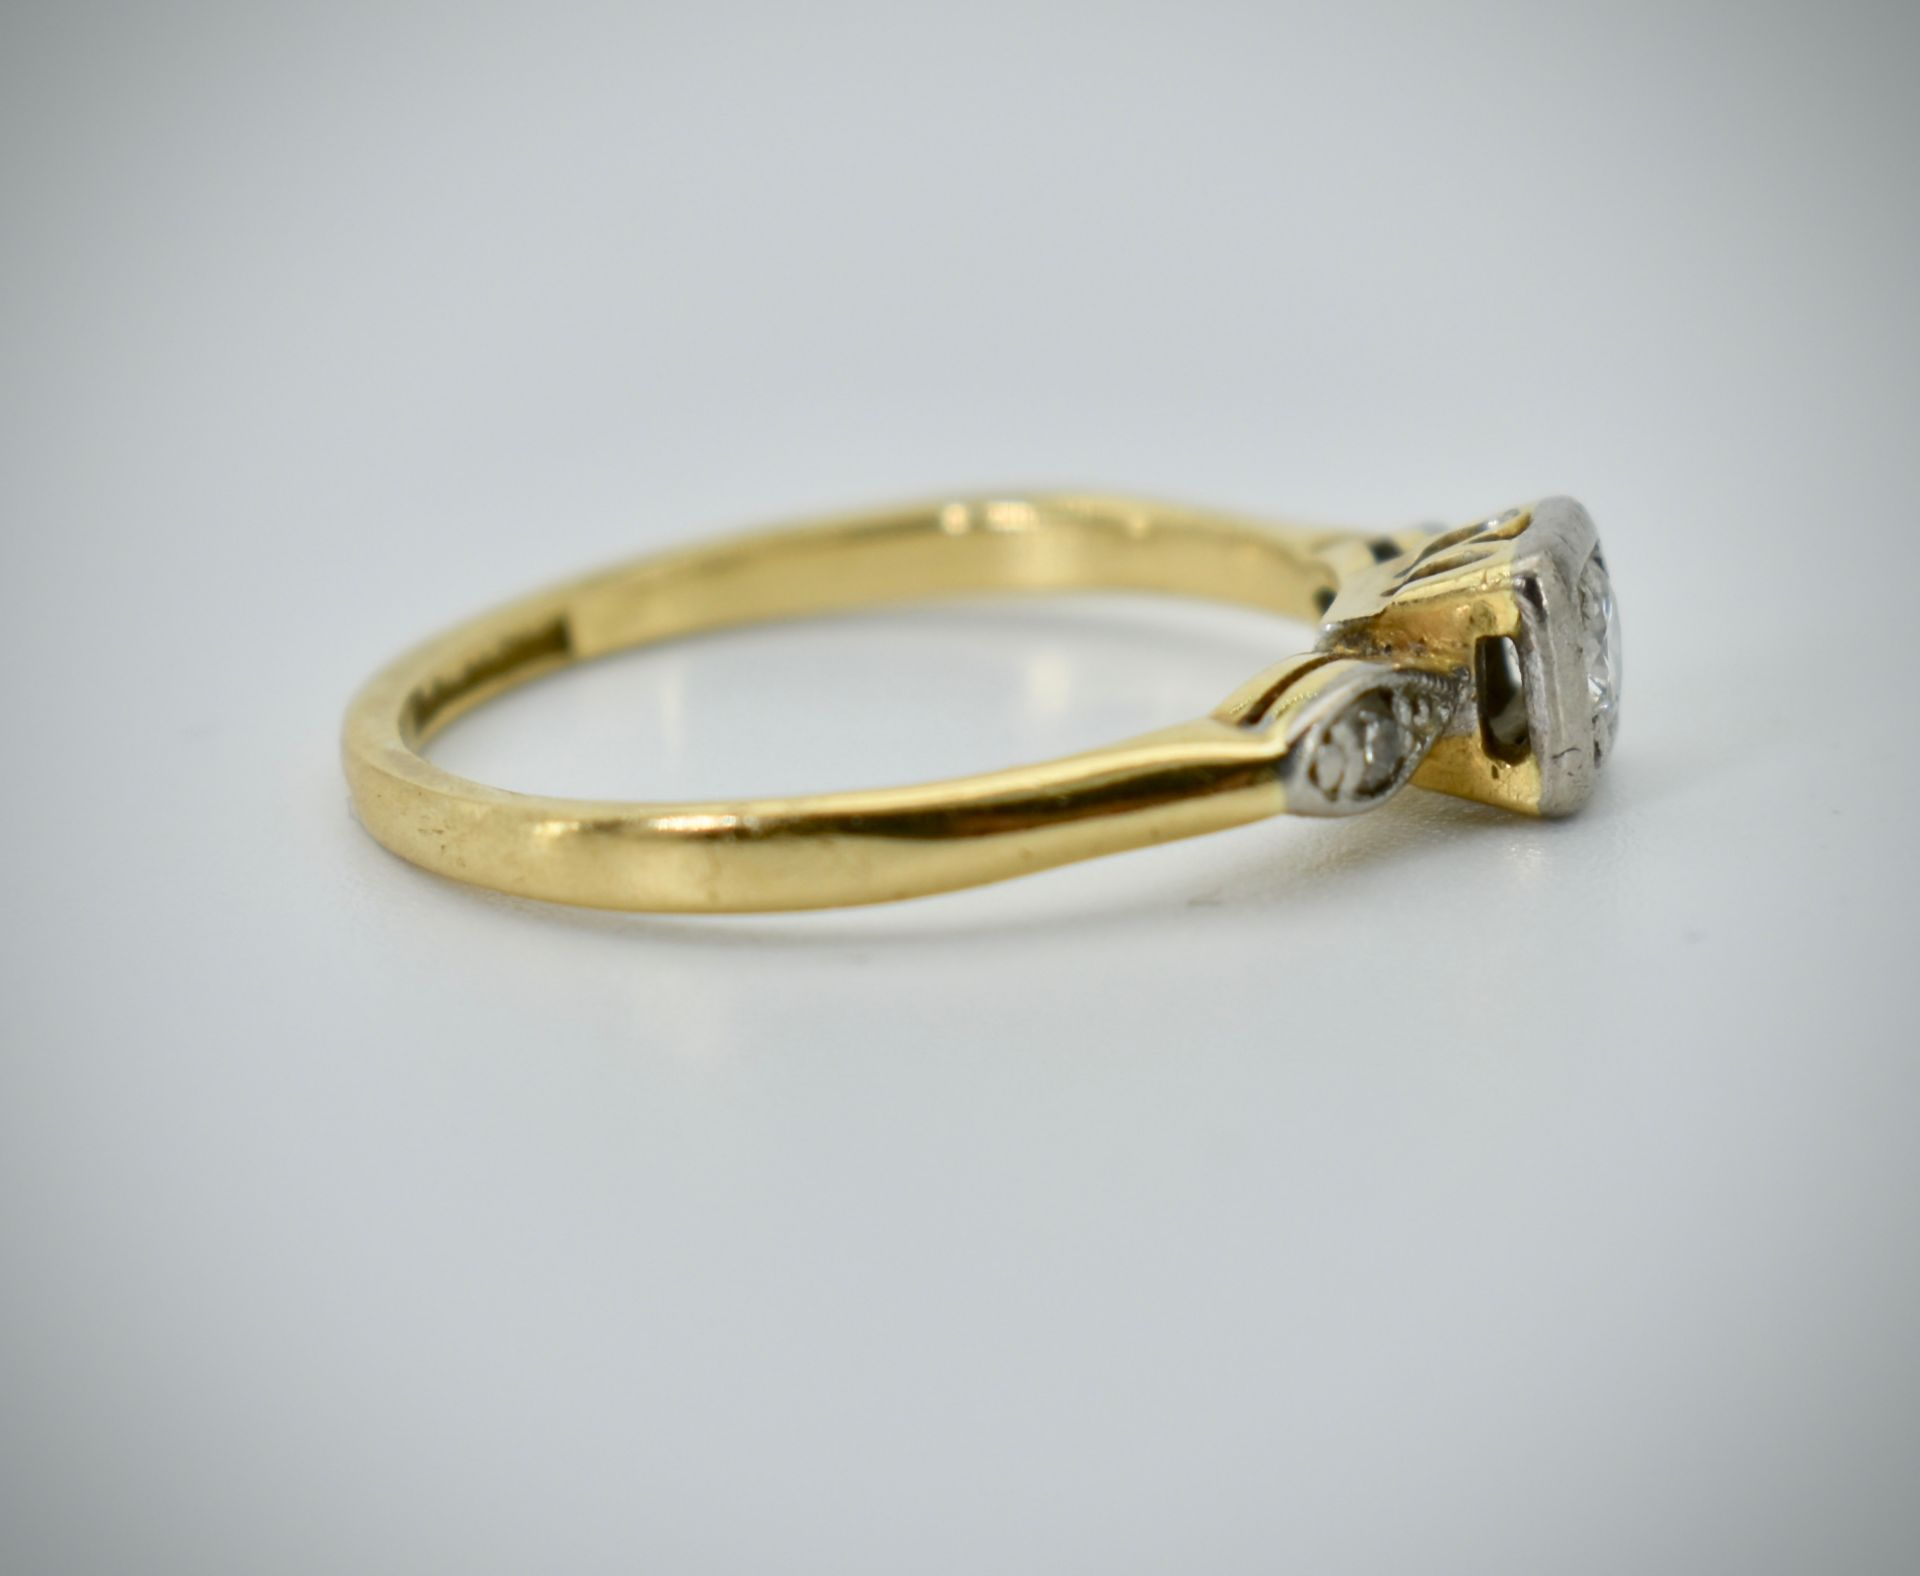 18ct Gold Platinum & Diamond Three Stone Ring - Image 2 of 4